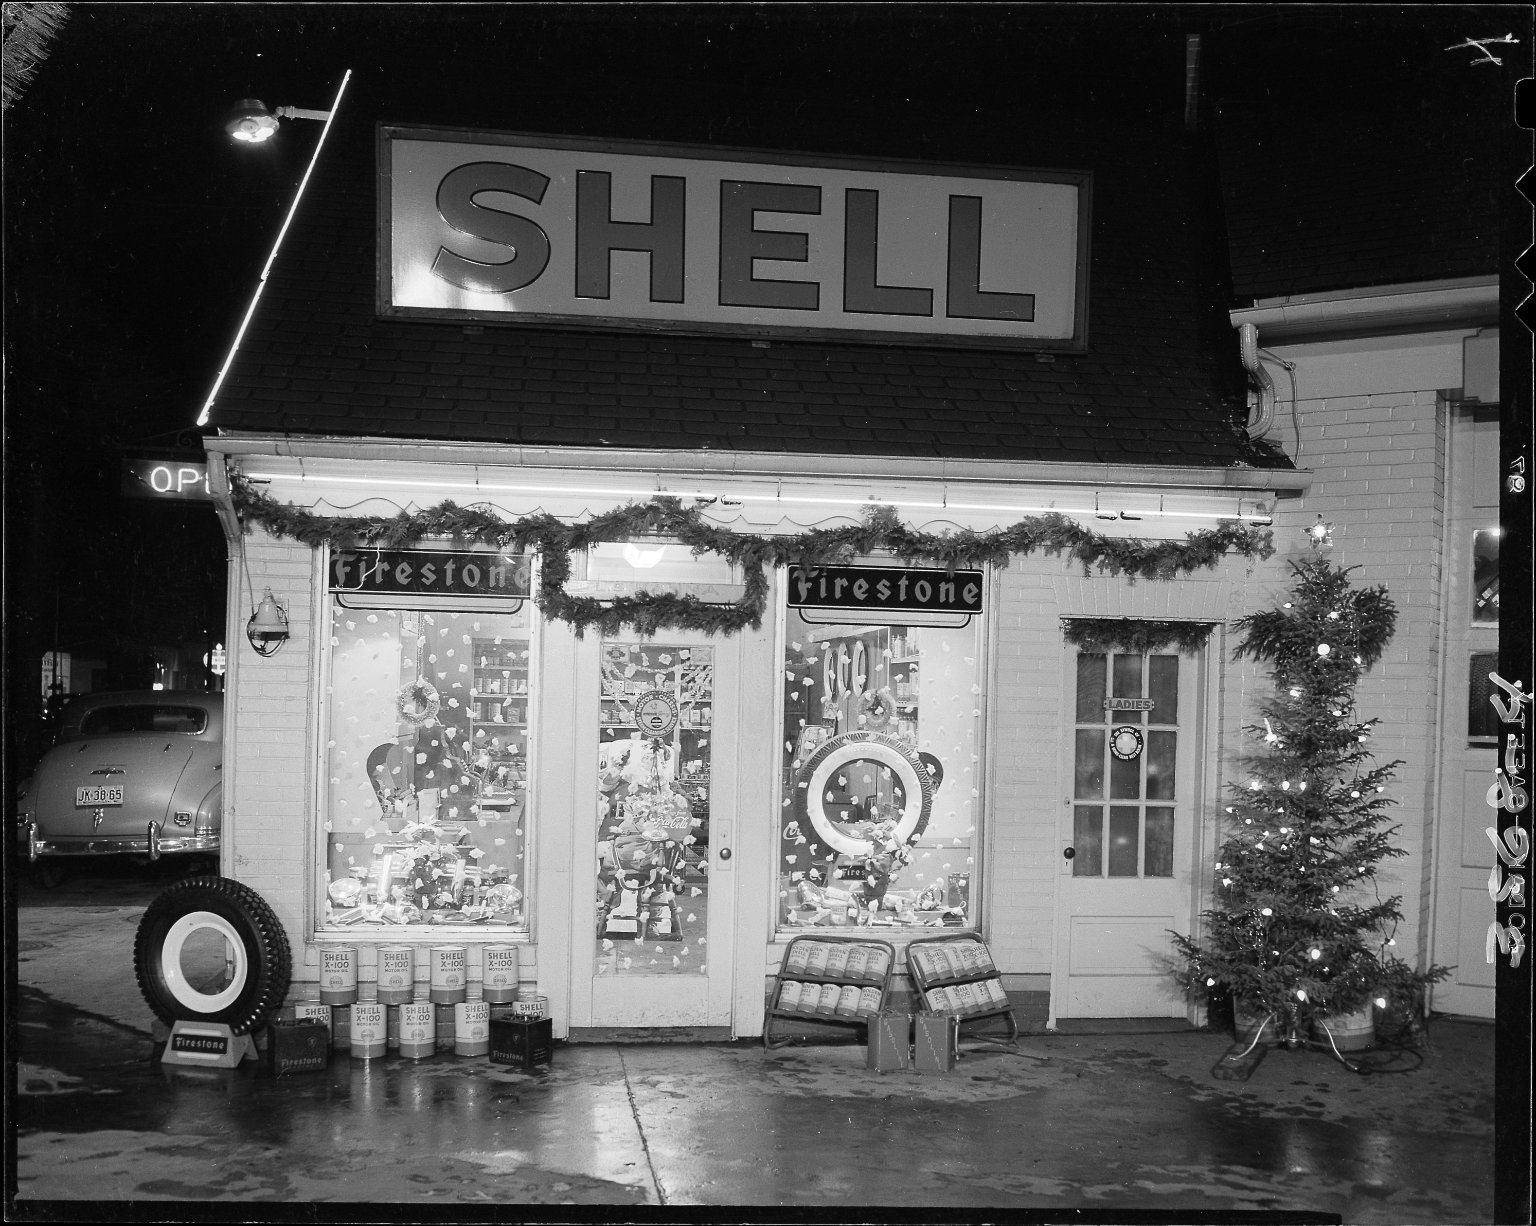 Shell gas station decorated for Christmas, close-up